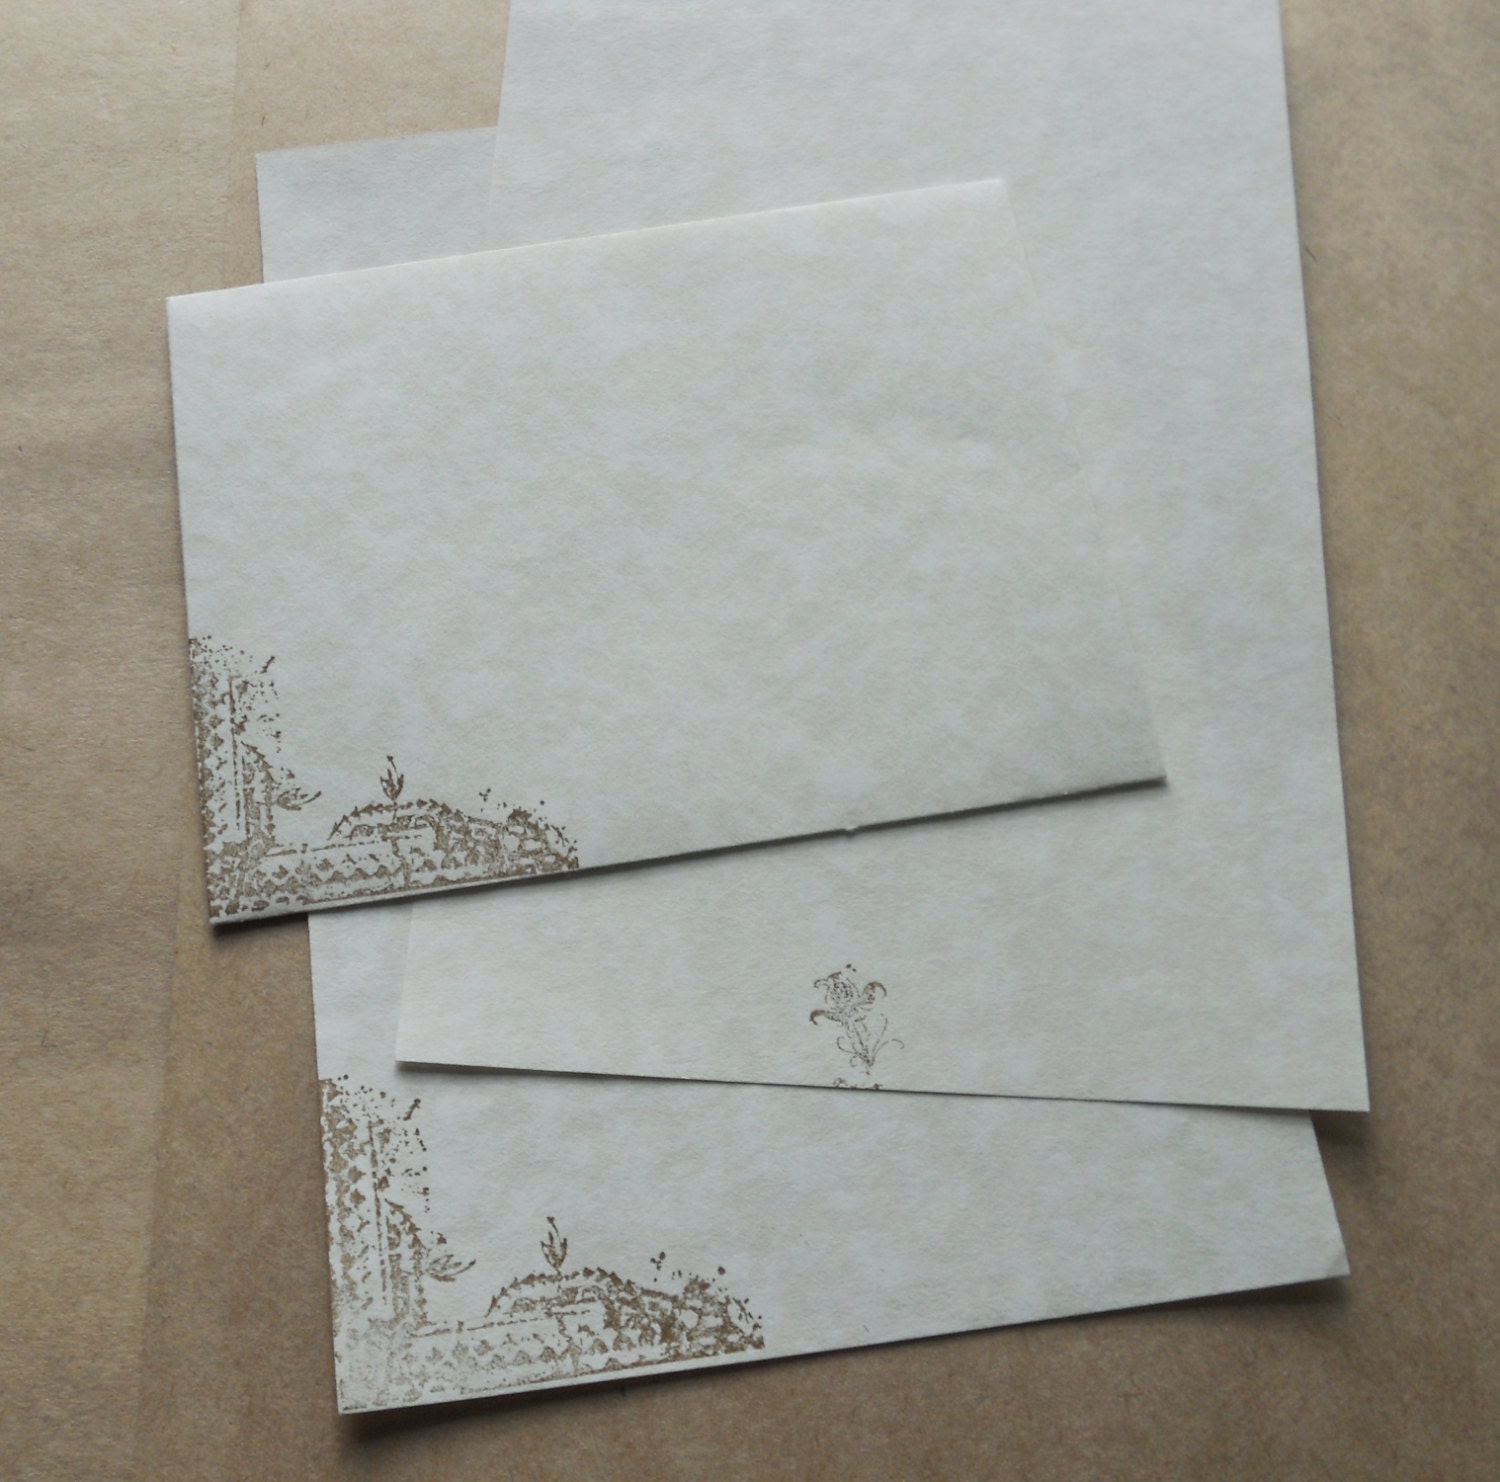 Parchment paper stationery set. Writing paper hand stamped